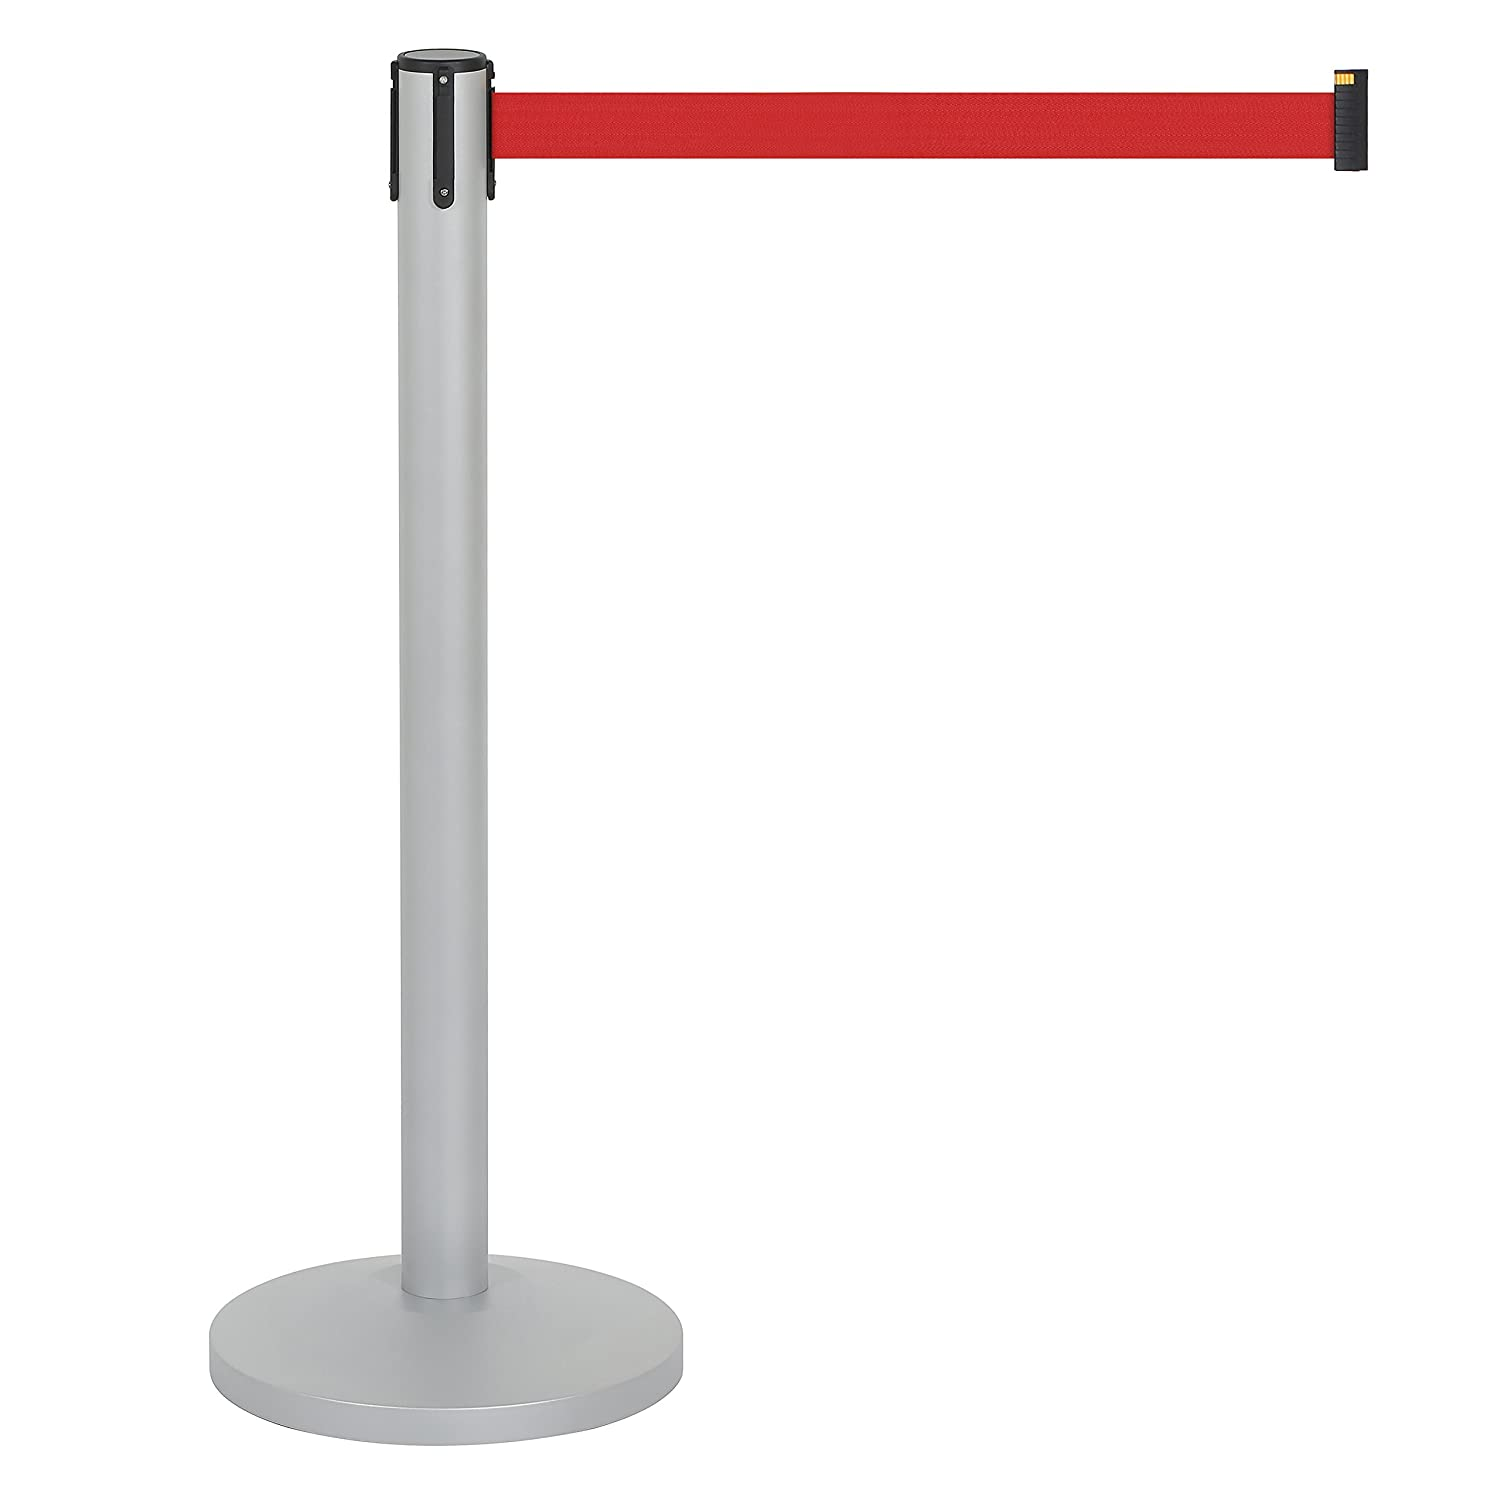 Image result for retractable barriers